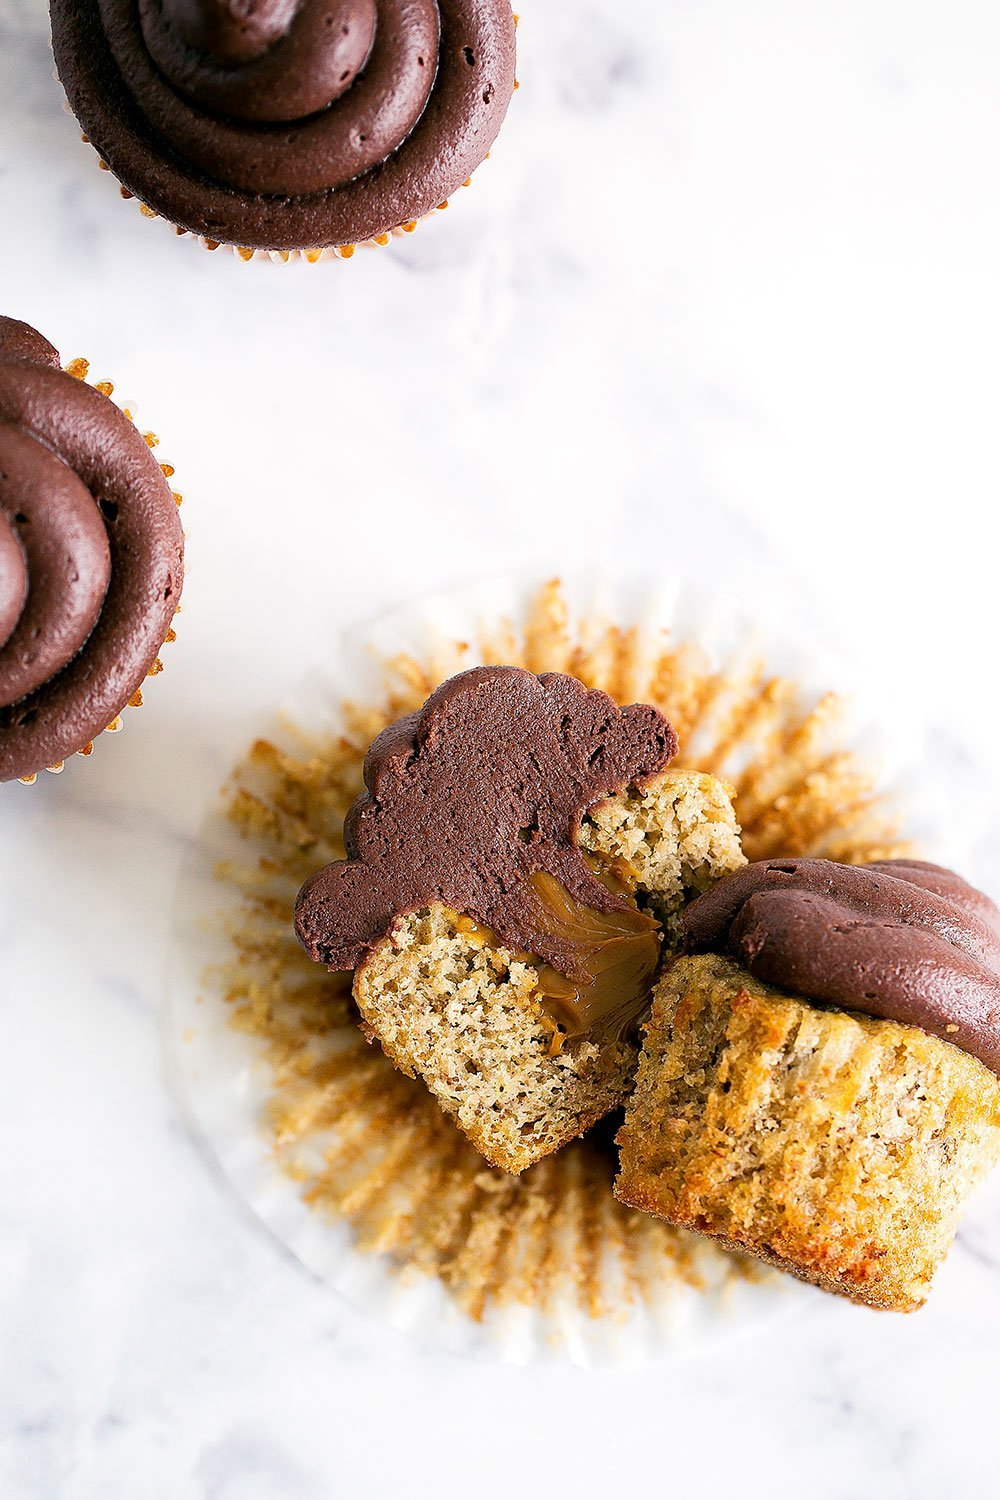 YUM! Dulce de Leche Banana Cupcakes with Chocolate Frosting are out of this world moist and flavorful!